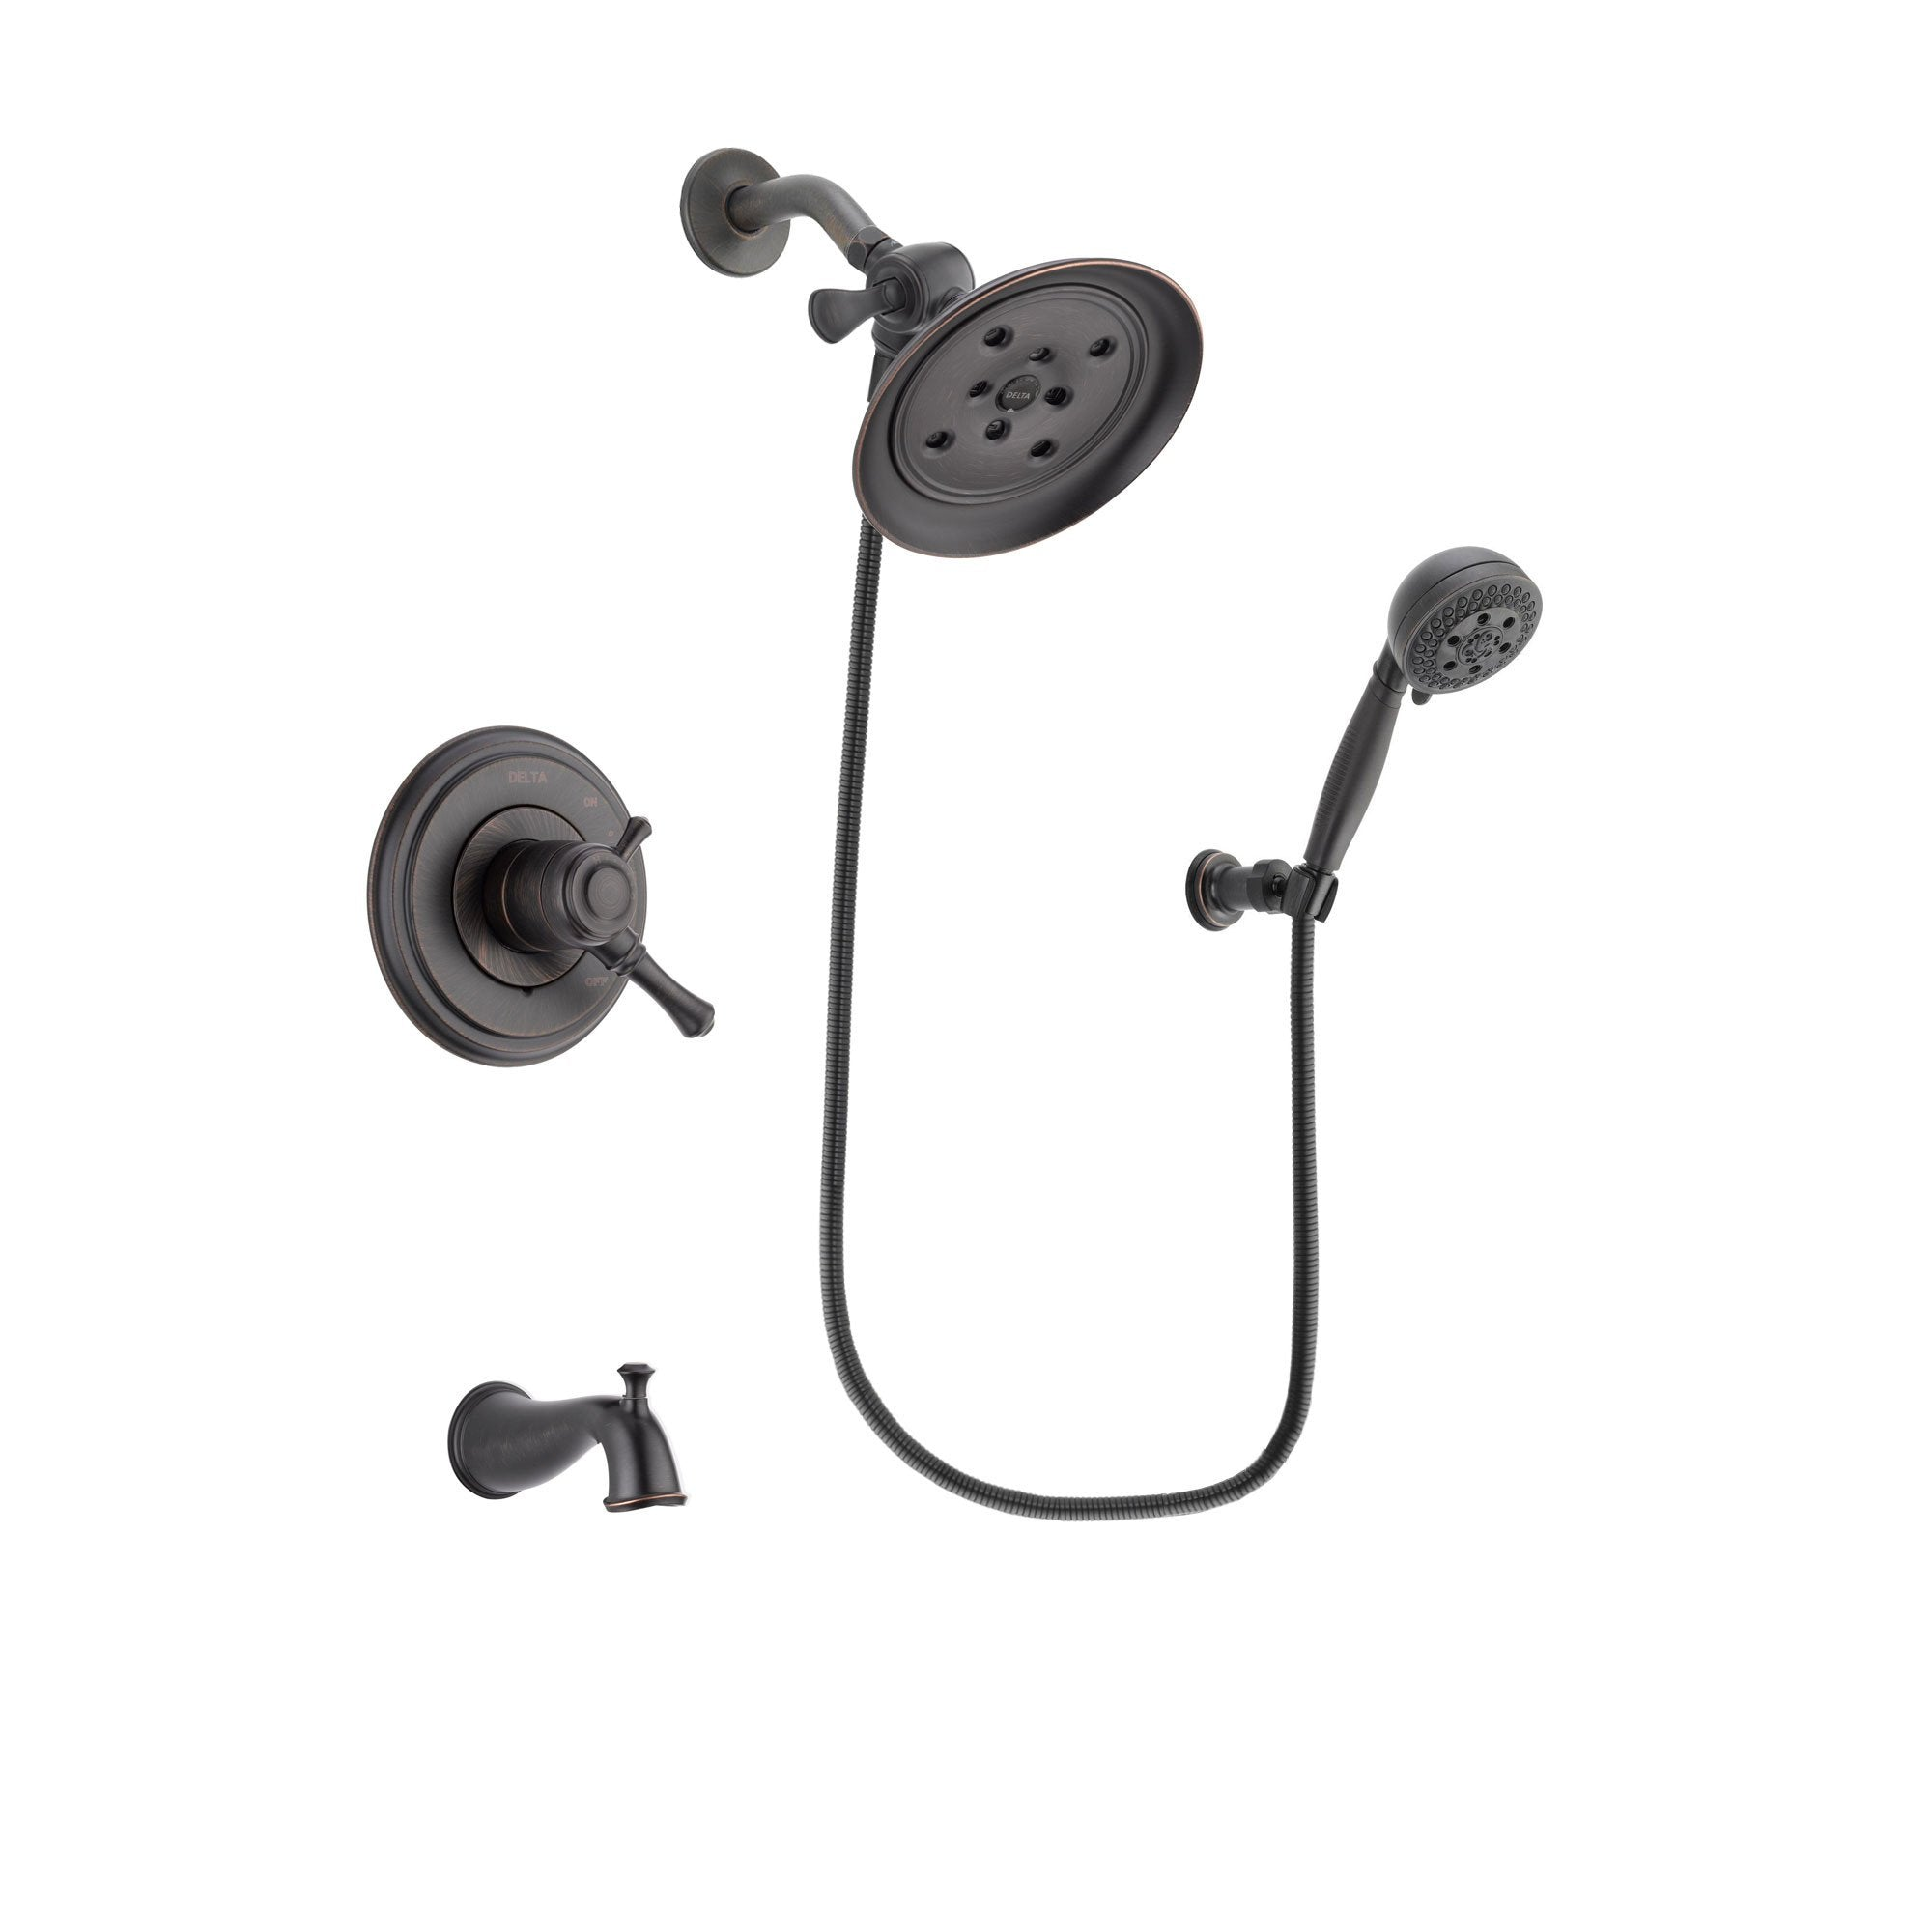 Delta Cassidy Venetian Bronze Tub and Shower System with Hand Shower DSP2829V